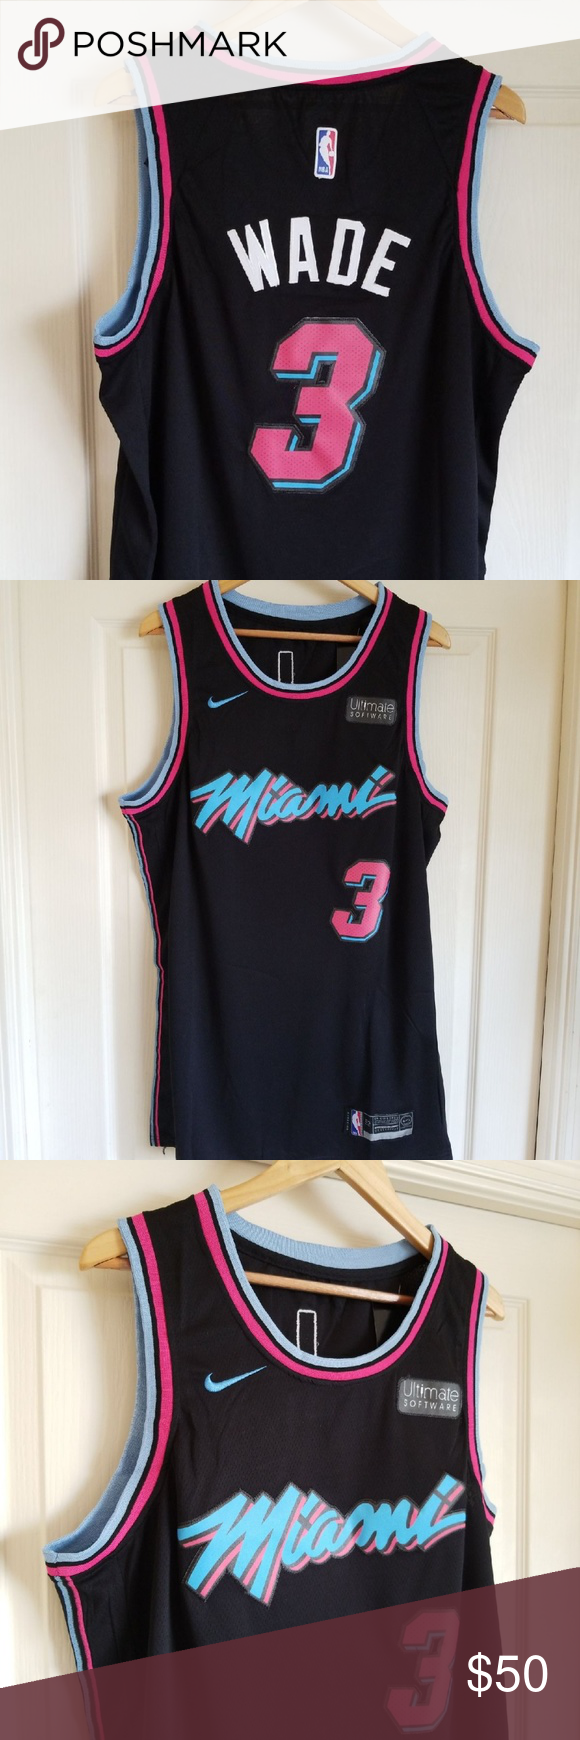 Dwyane Wade Black Miami Heat Vice Jersey Brand New With Tags Size 2xl Available Stitched Name And Numbers Same Or Next Da Clothes Design Nba Shirts Black